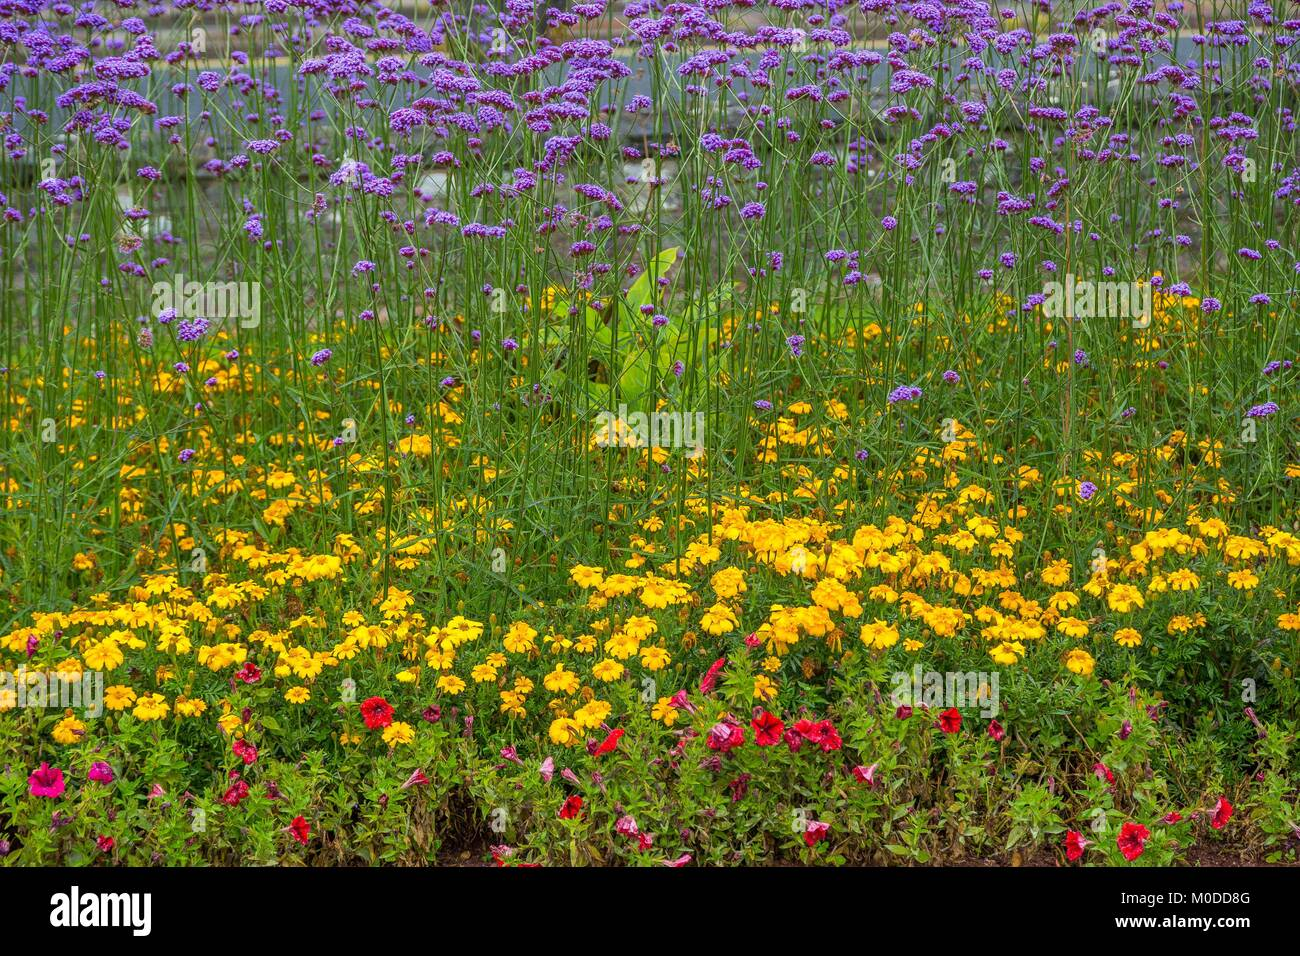 A yellow and purple or mauve display of summer flowers flowering in a park in Torquay, Devon. - Stock Image